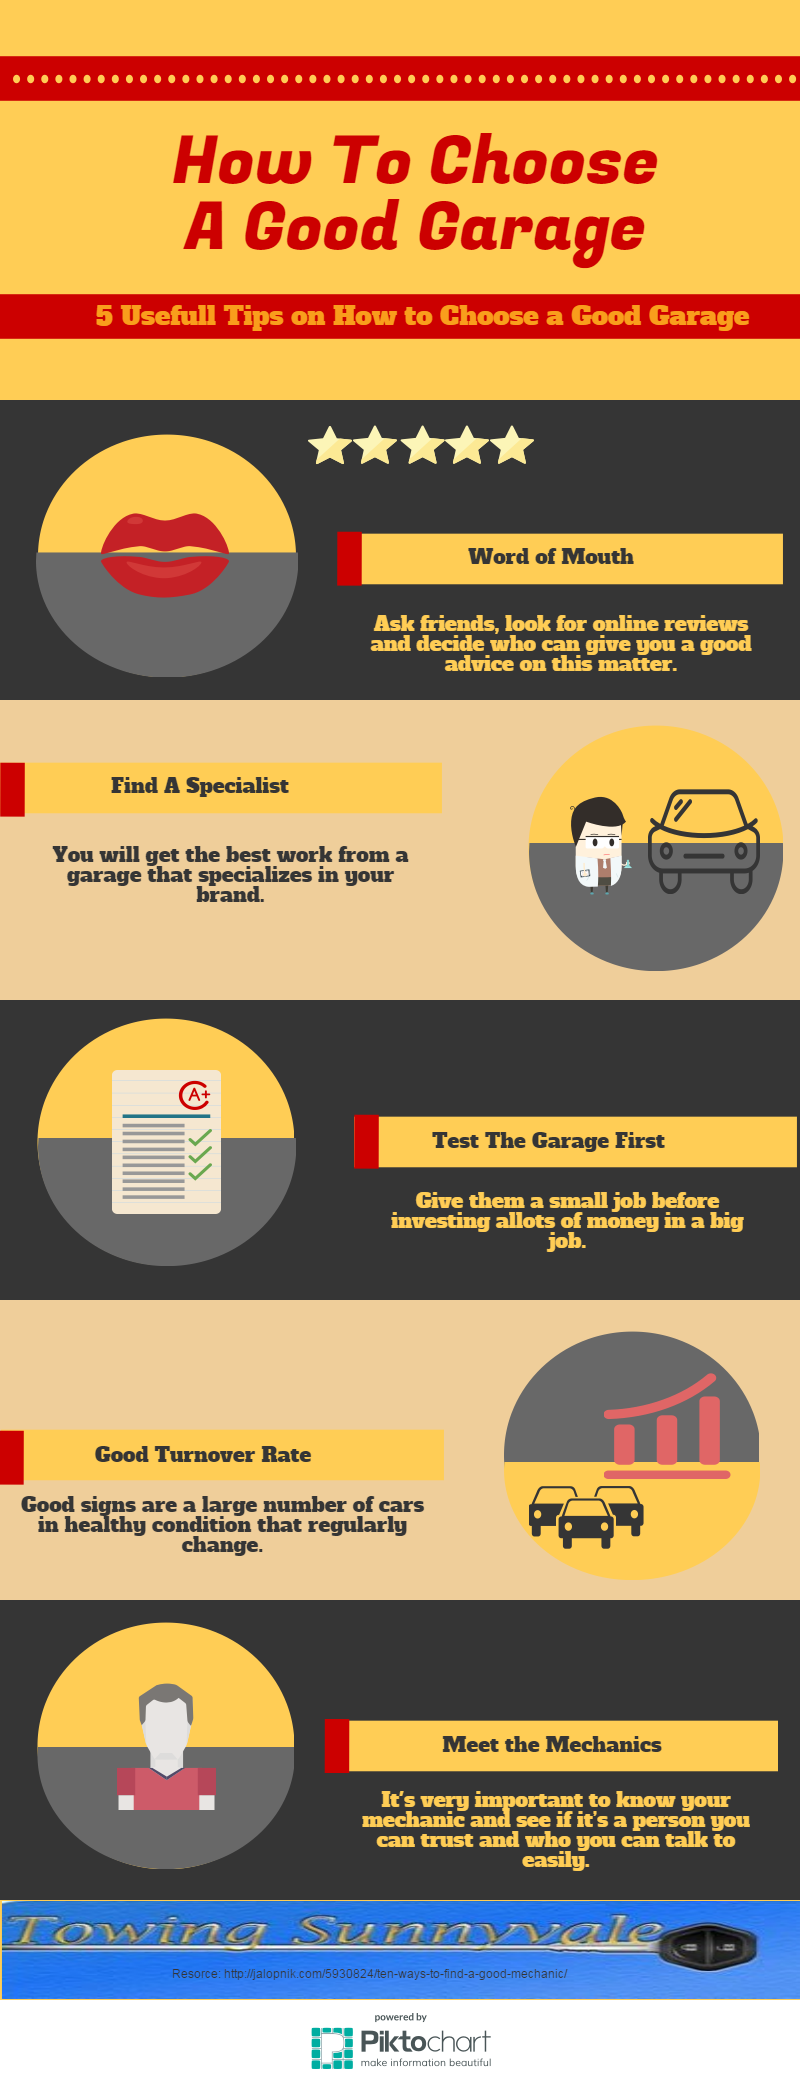 How to choose a good garage